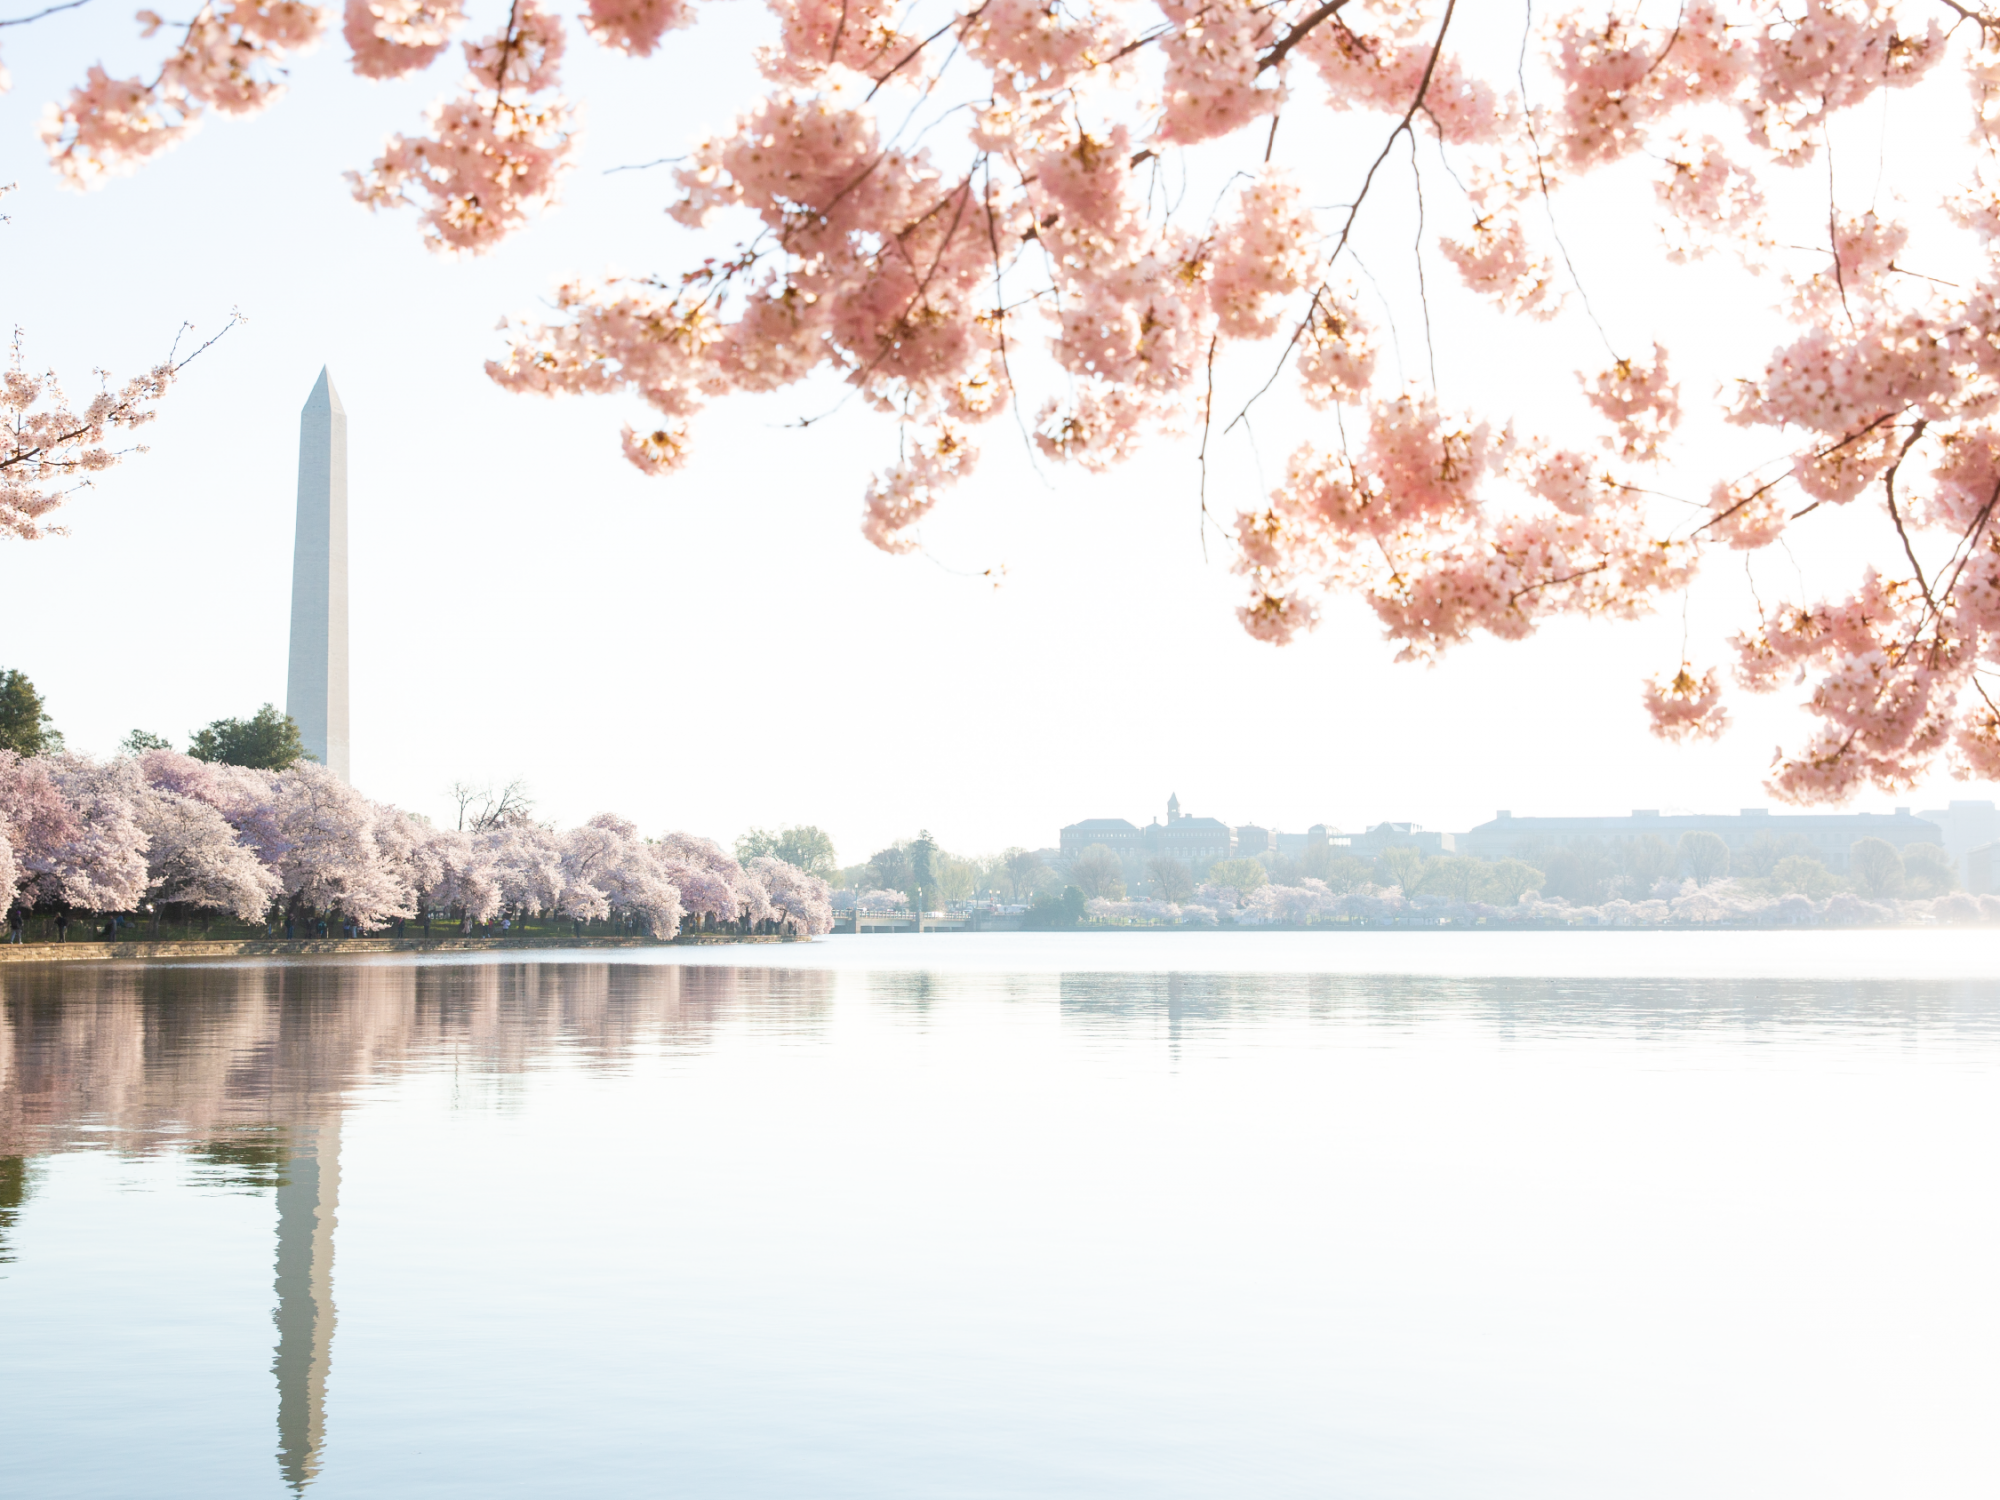 Image of the Washington Monument taken during the cherry blossom festival